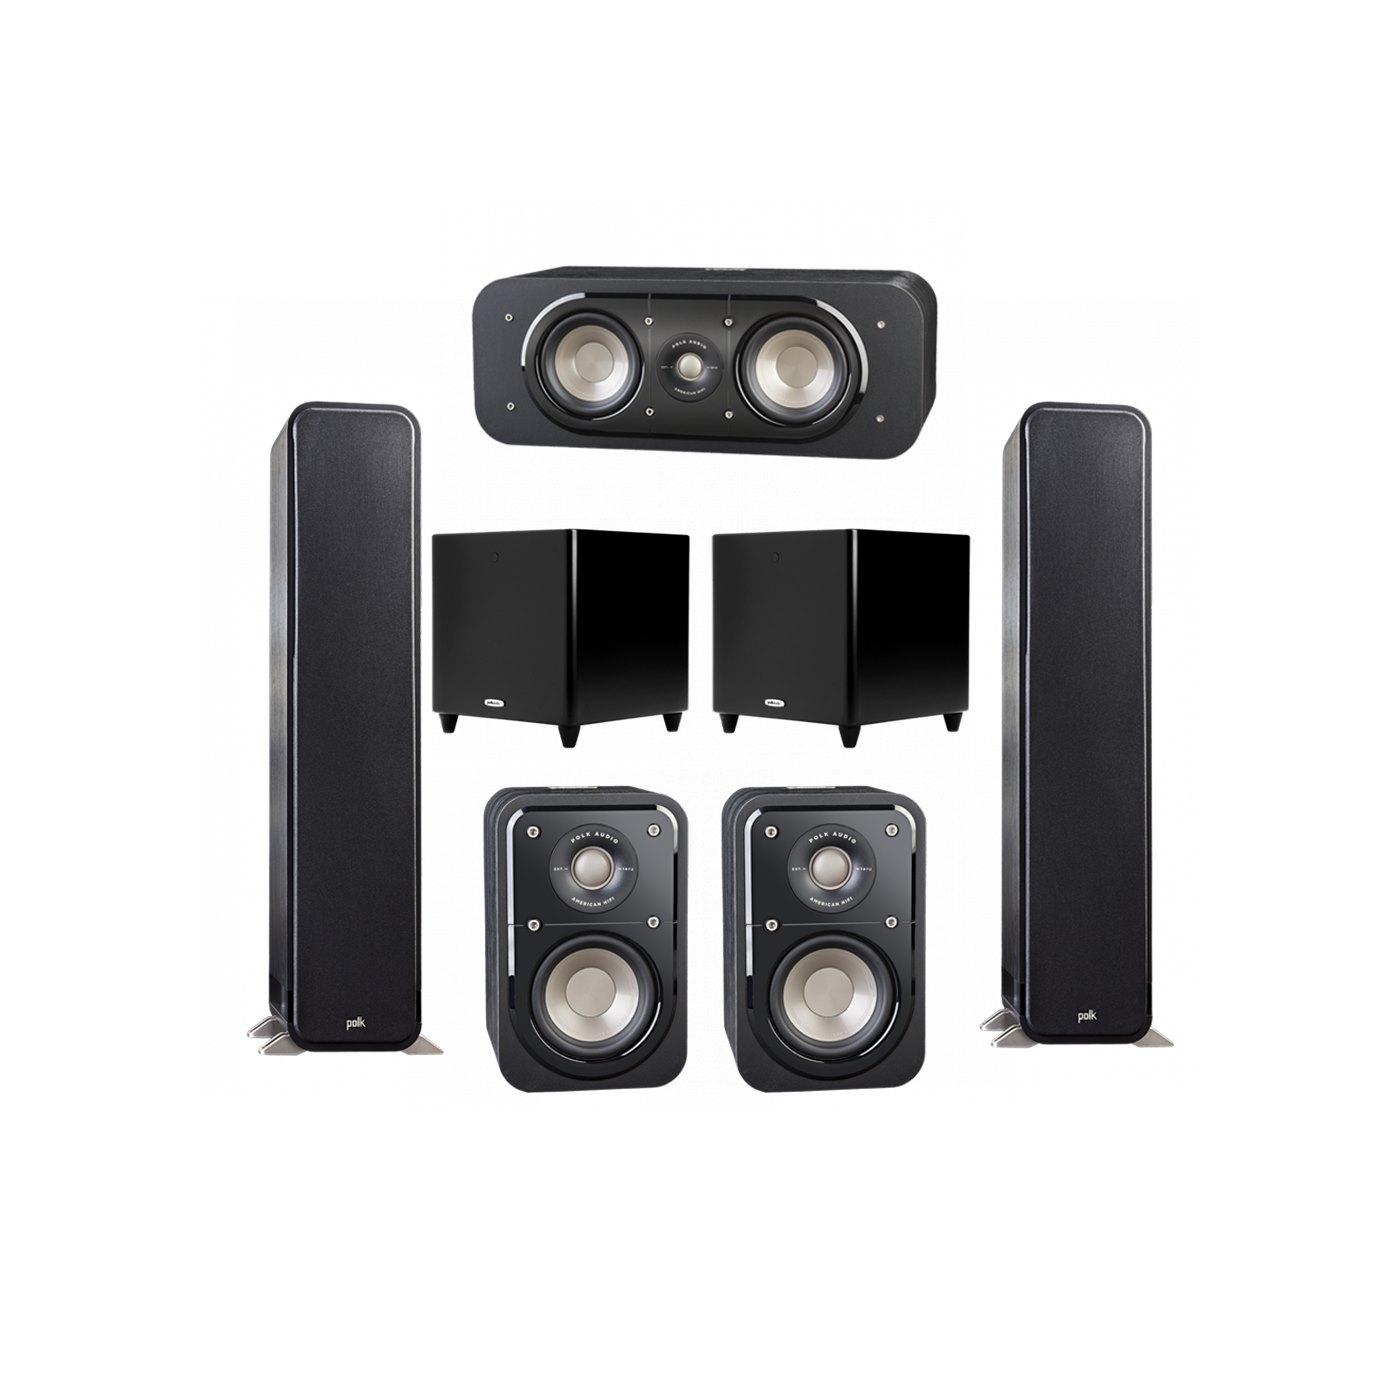 Polk Audio Signature 5.2 System with 2 S55 Tower Speaker, 1 Polk S30 Center Speaker, 2 Polk S10 Surround Speaker, 2 Polk DSW PRO 550 wi Subwoofer